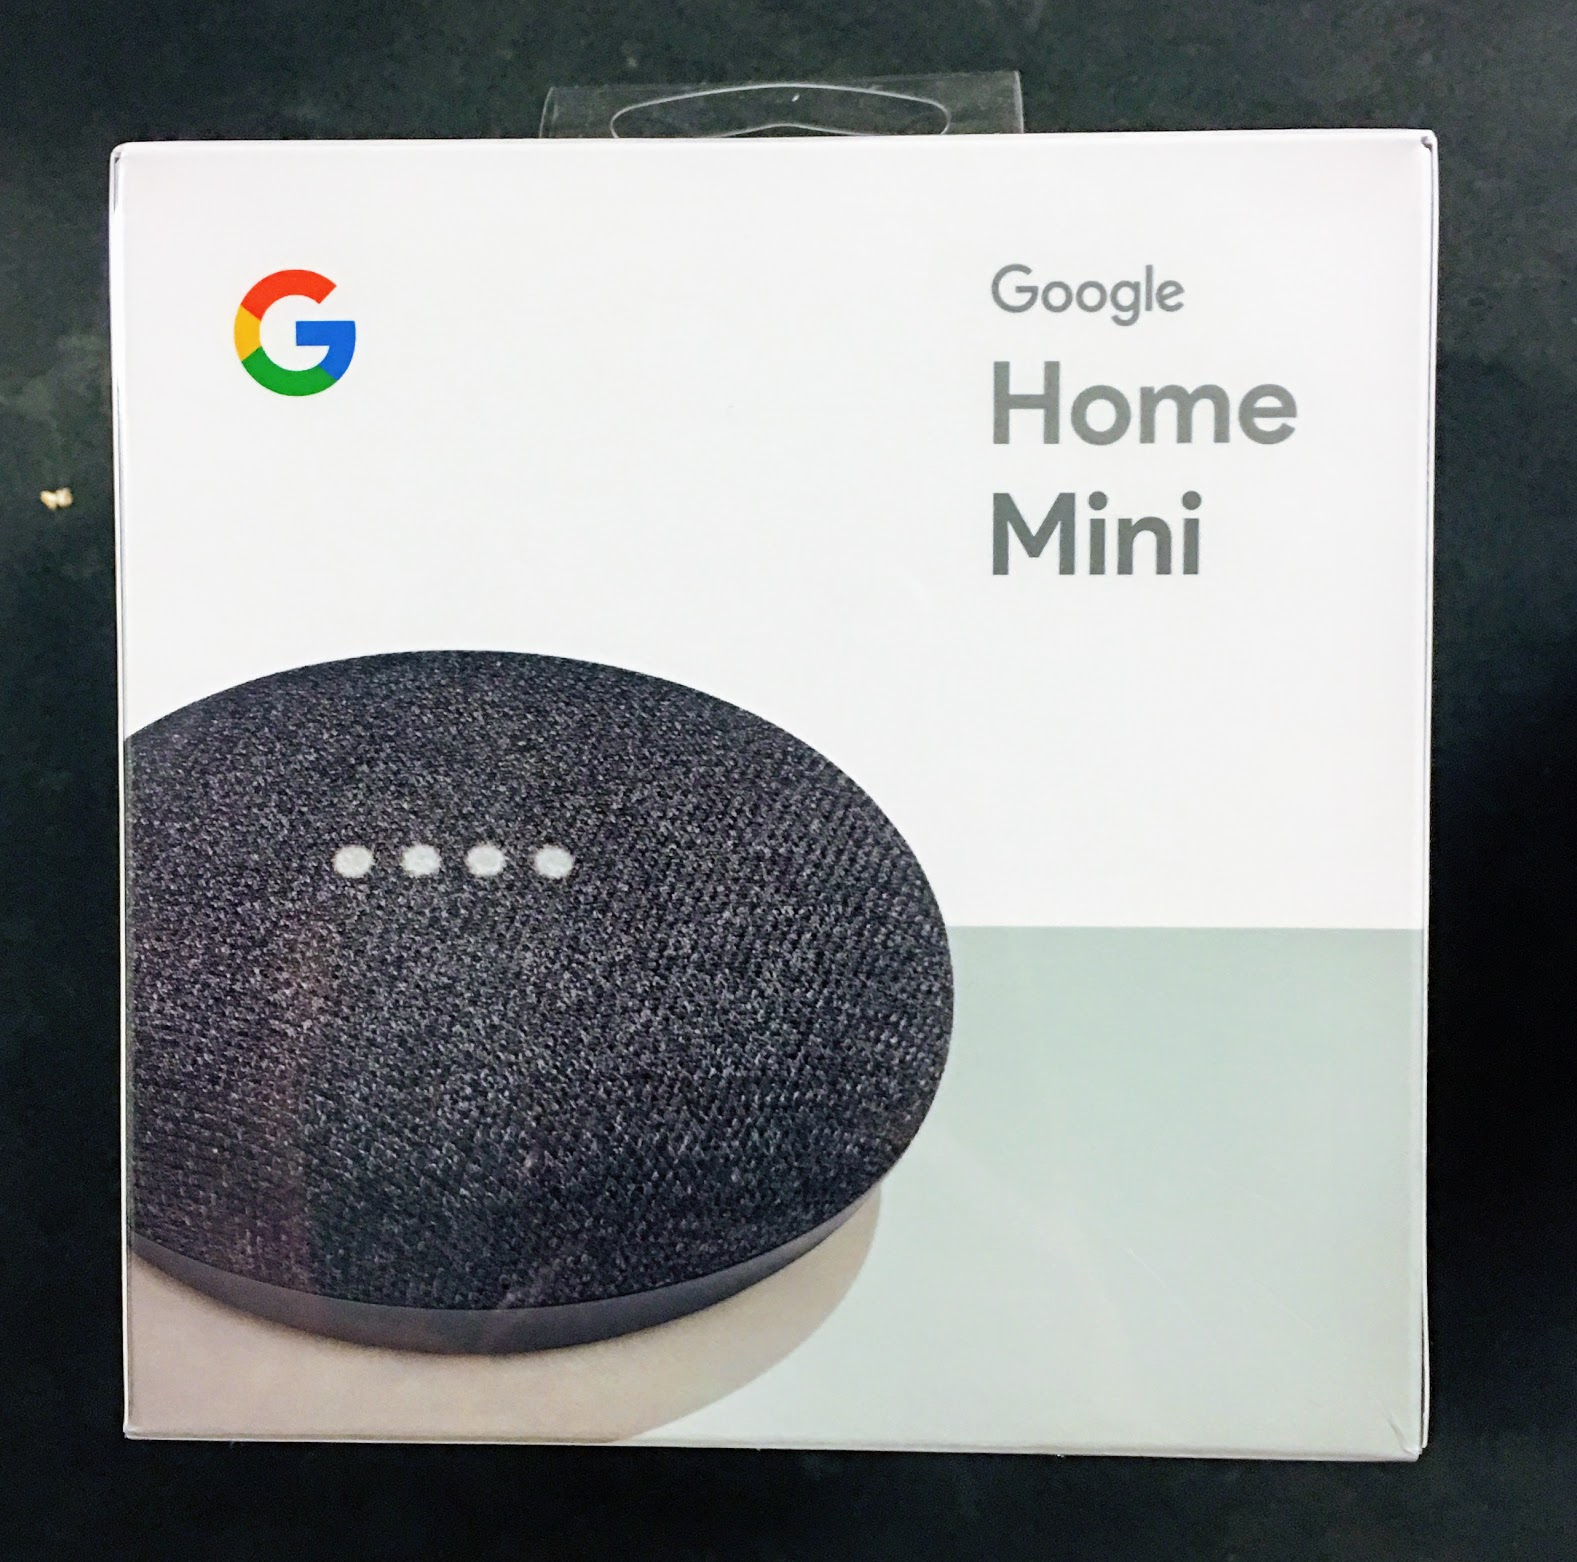 Unboxing Experiences Google Home By Matt Rae Medium